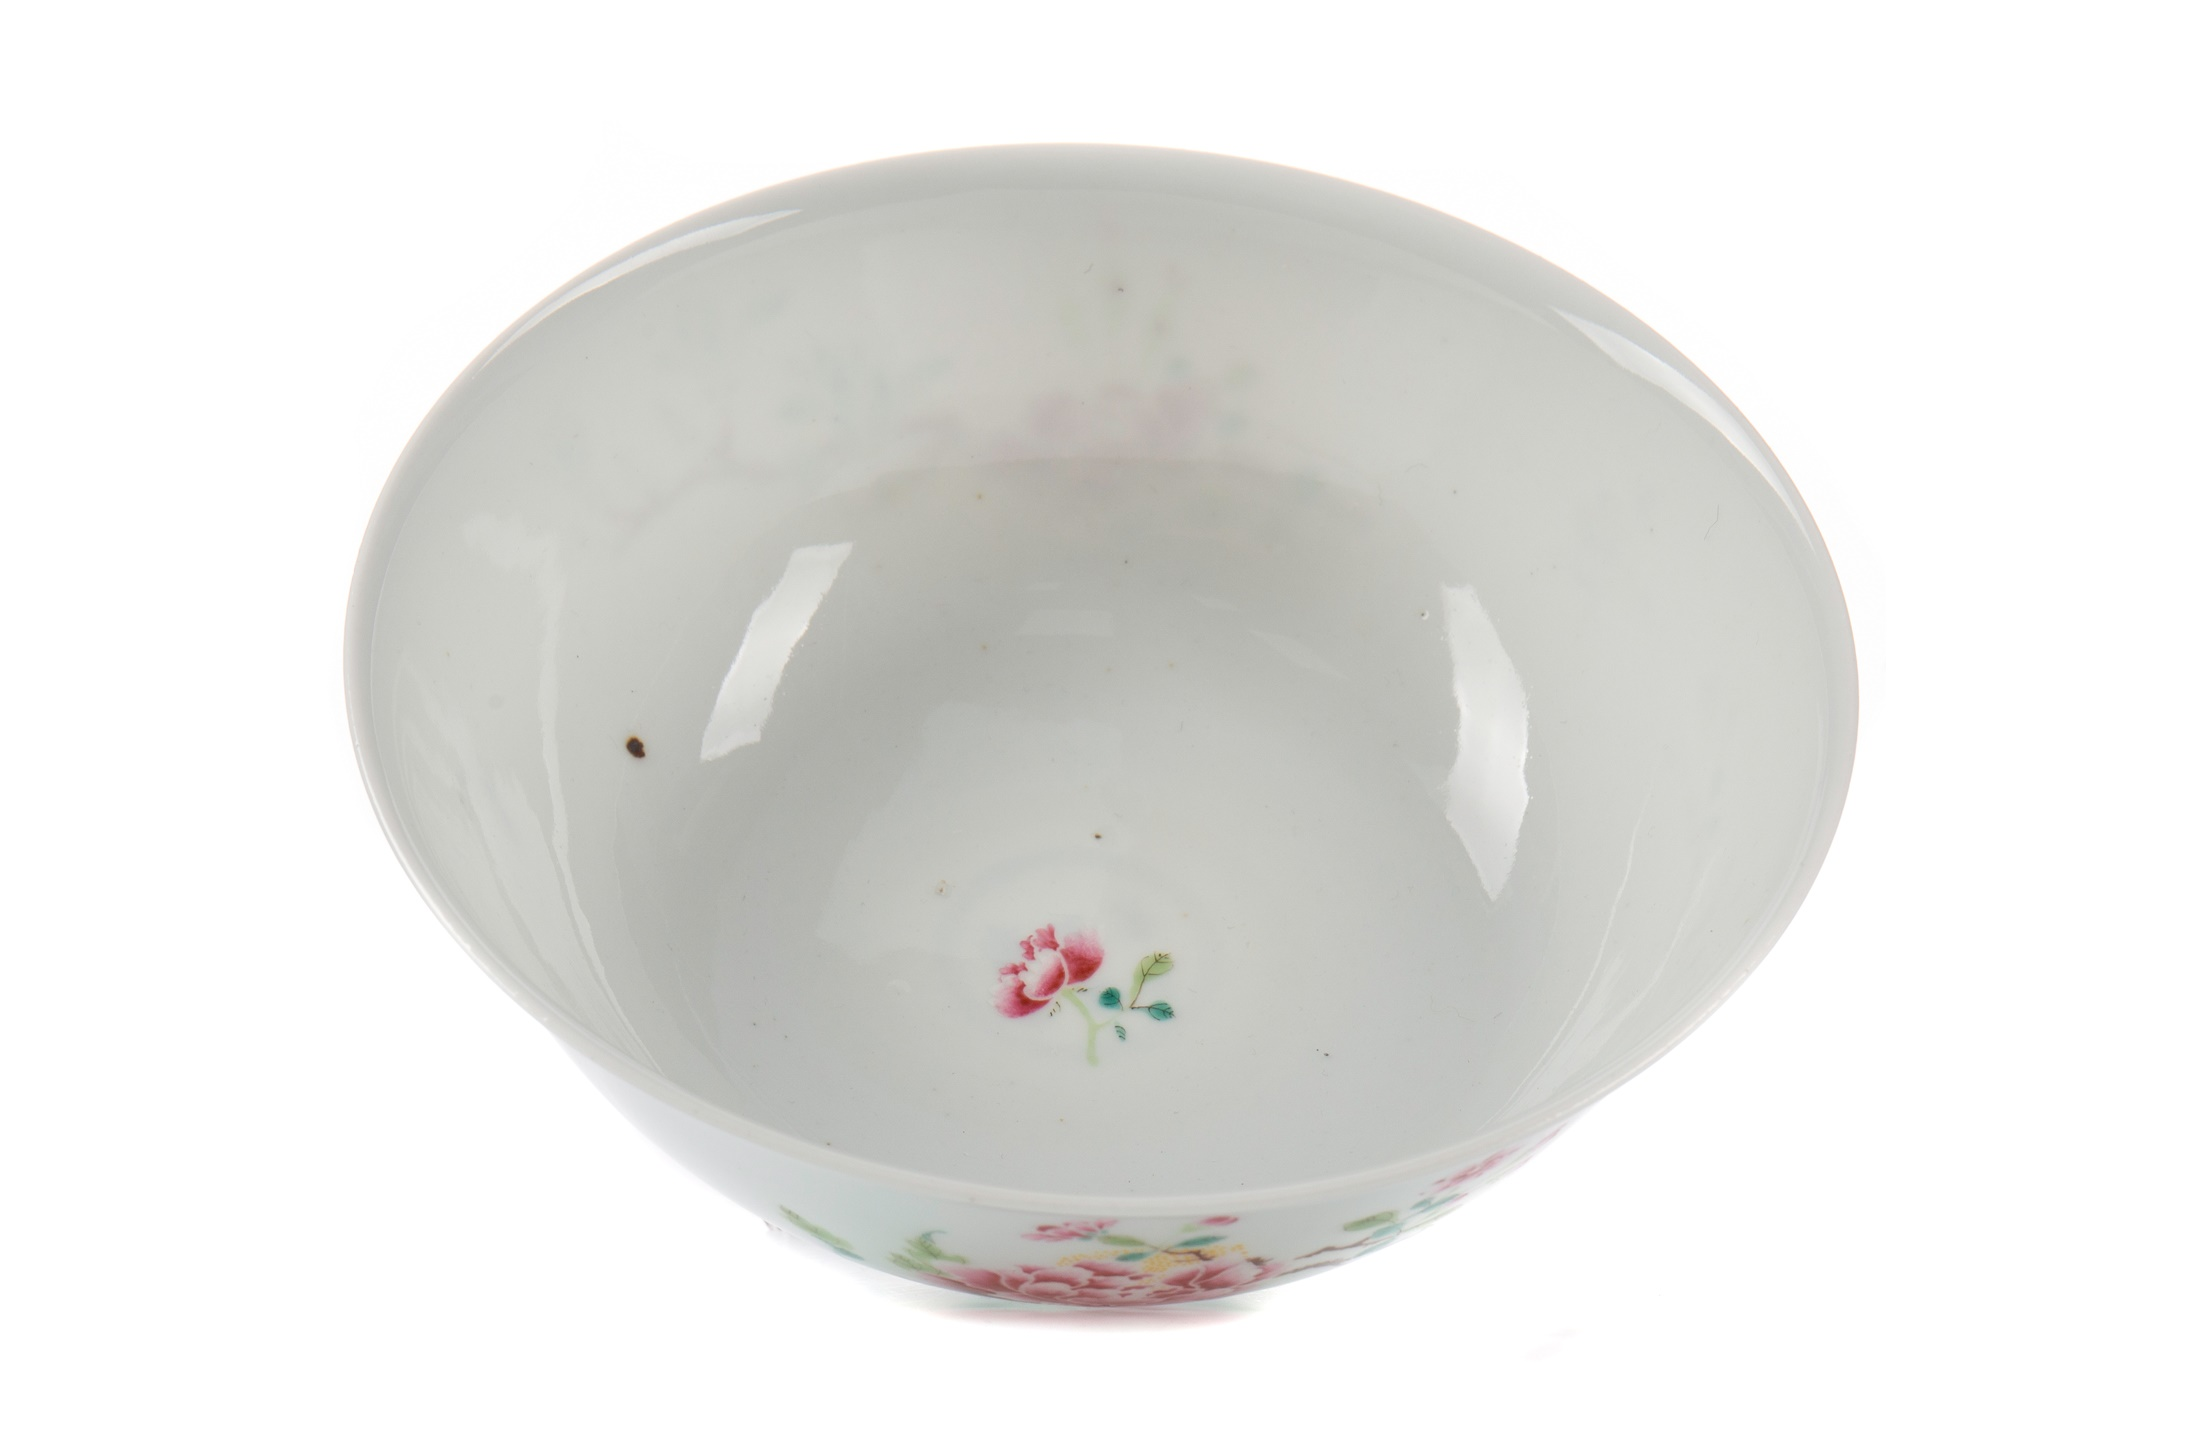 AN EARLY 20TH CENTURY CHINESE CIRCULAR BOWL - Image 2 of 2